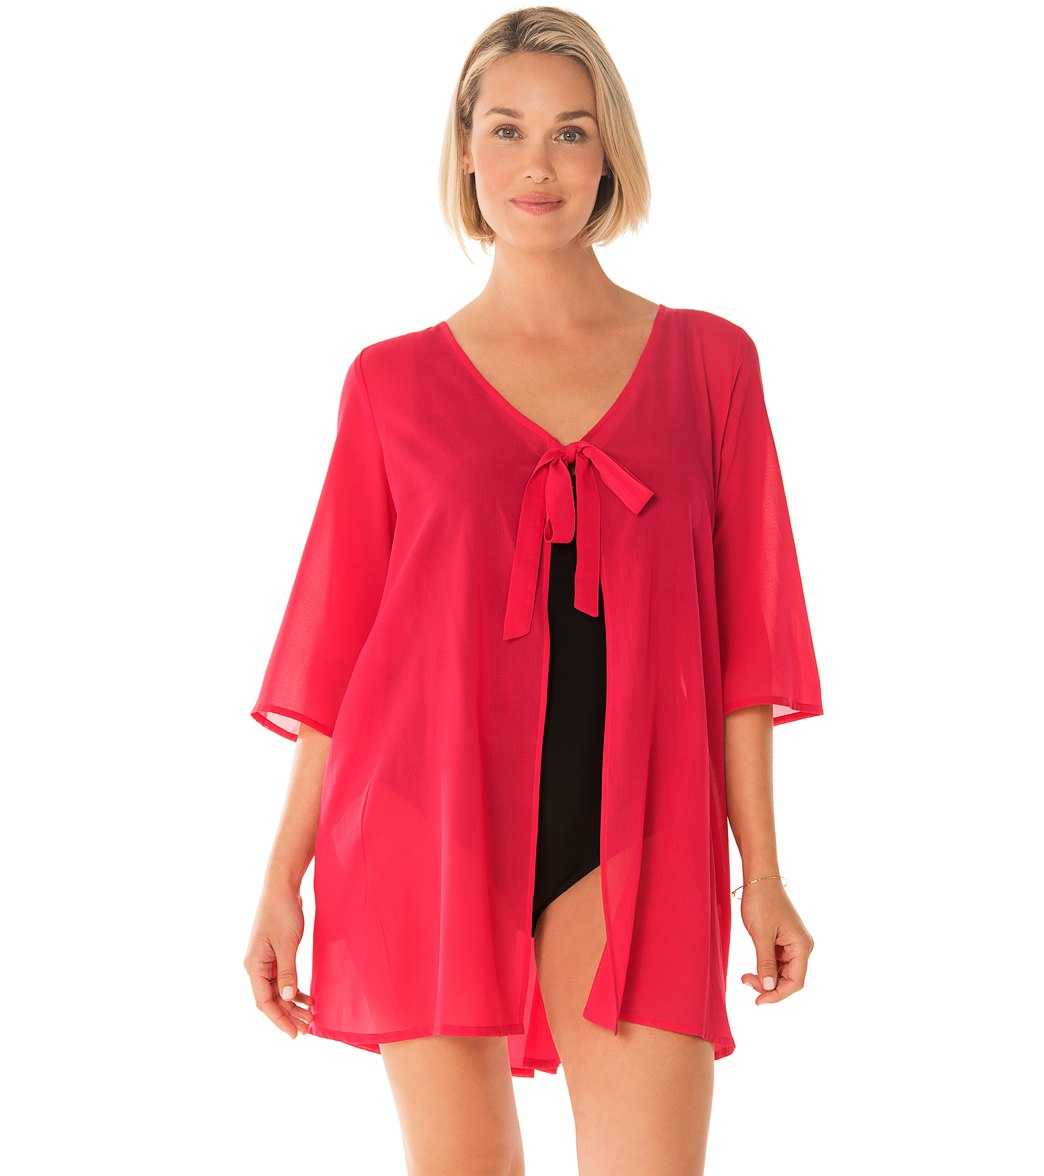 18333259b99c9 Penbrooke Take Cover Poly Georgette Tie Front Cover Up Dress at  SwimOutlet.com - Free Shipping